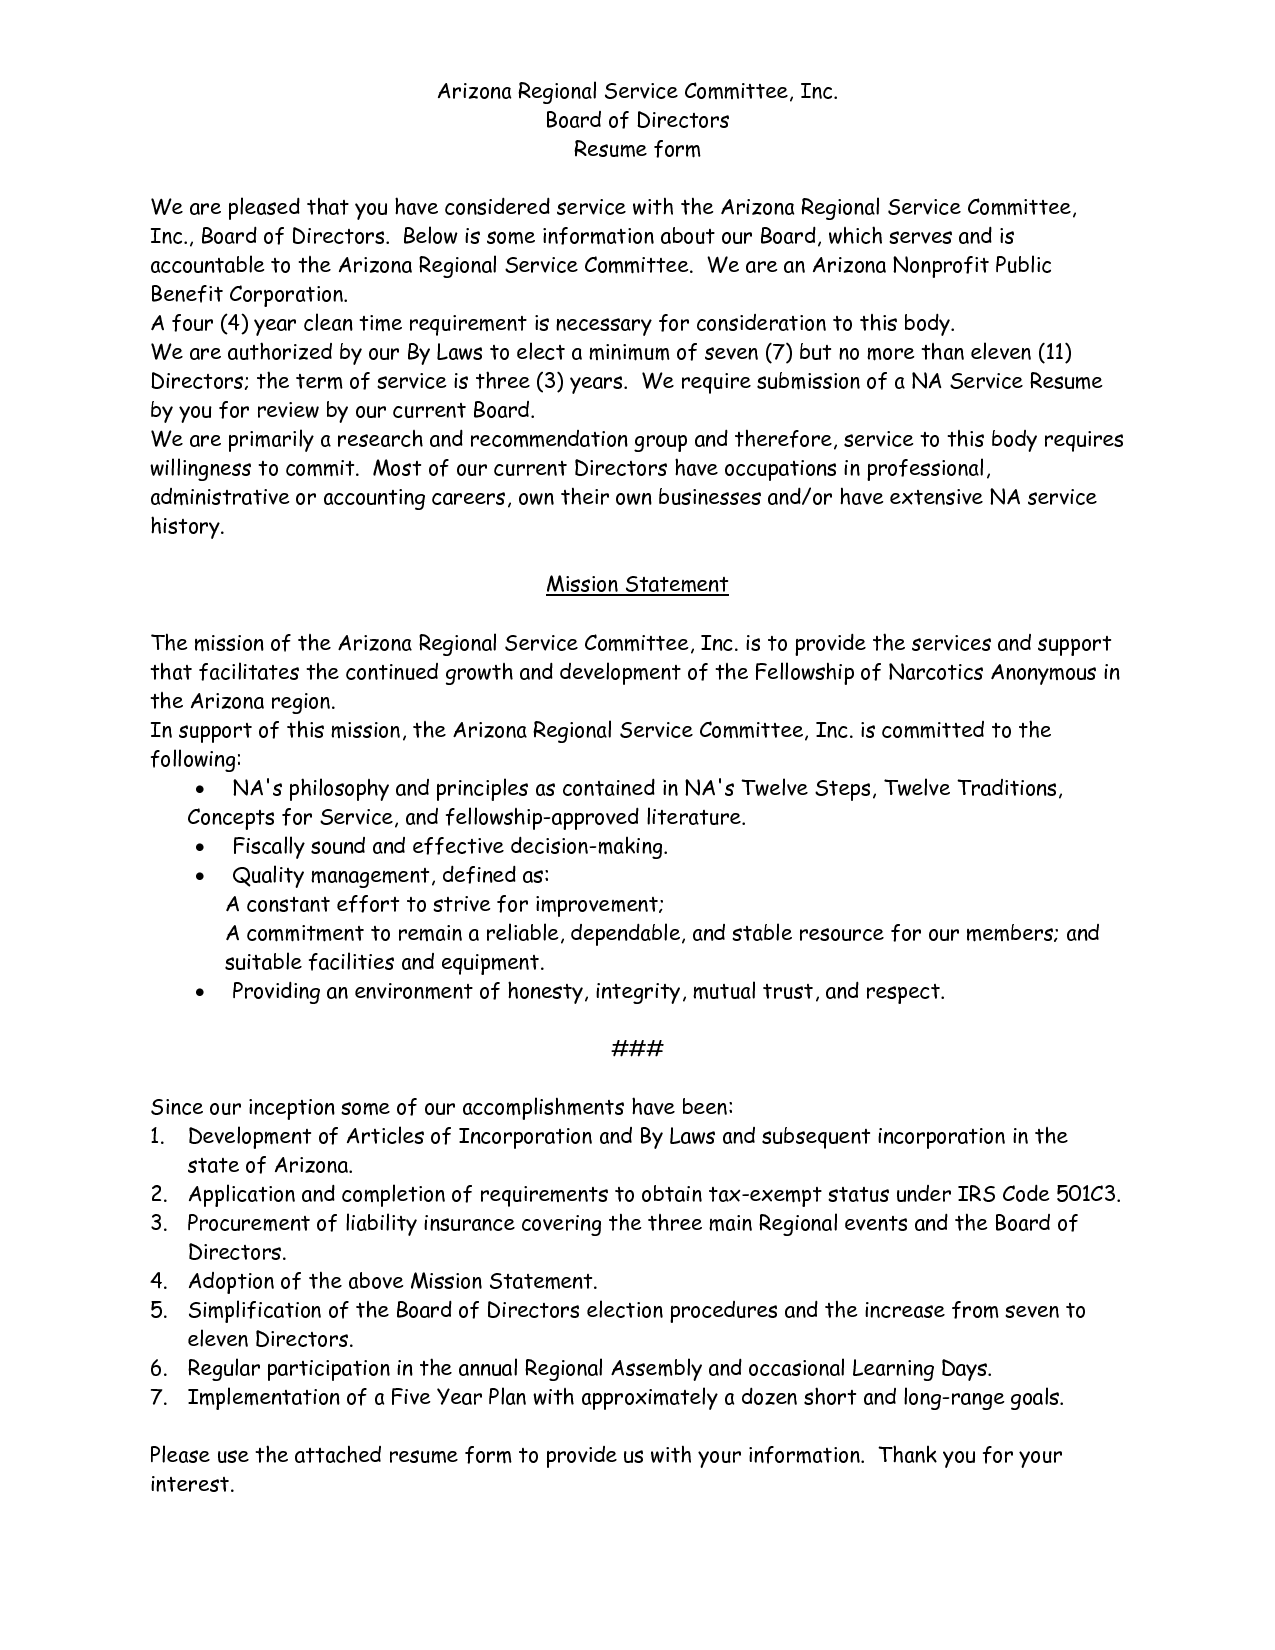 Ernst and resume sle 28 images ernst and resume sle 28 for Ernst and young resume sample